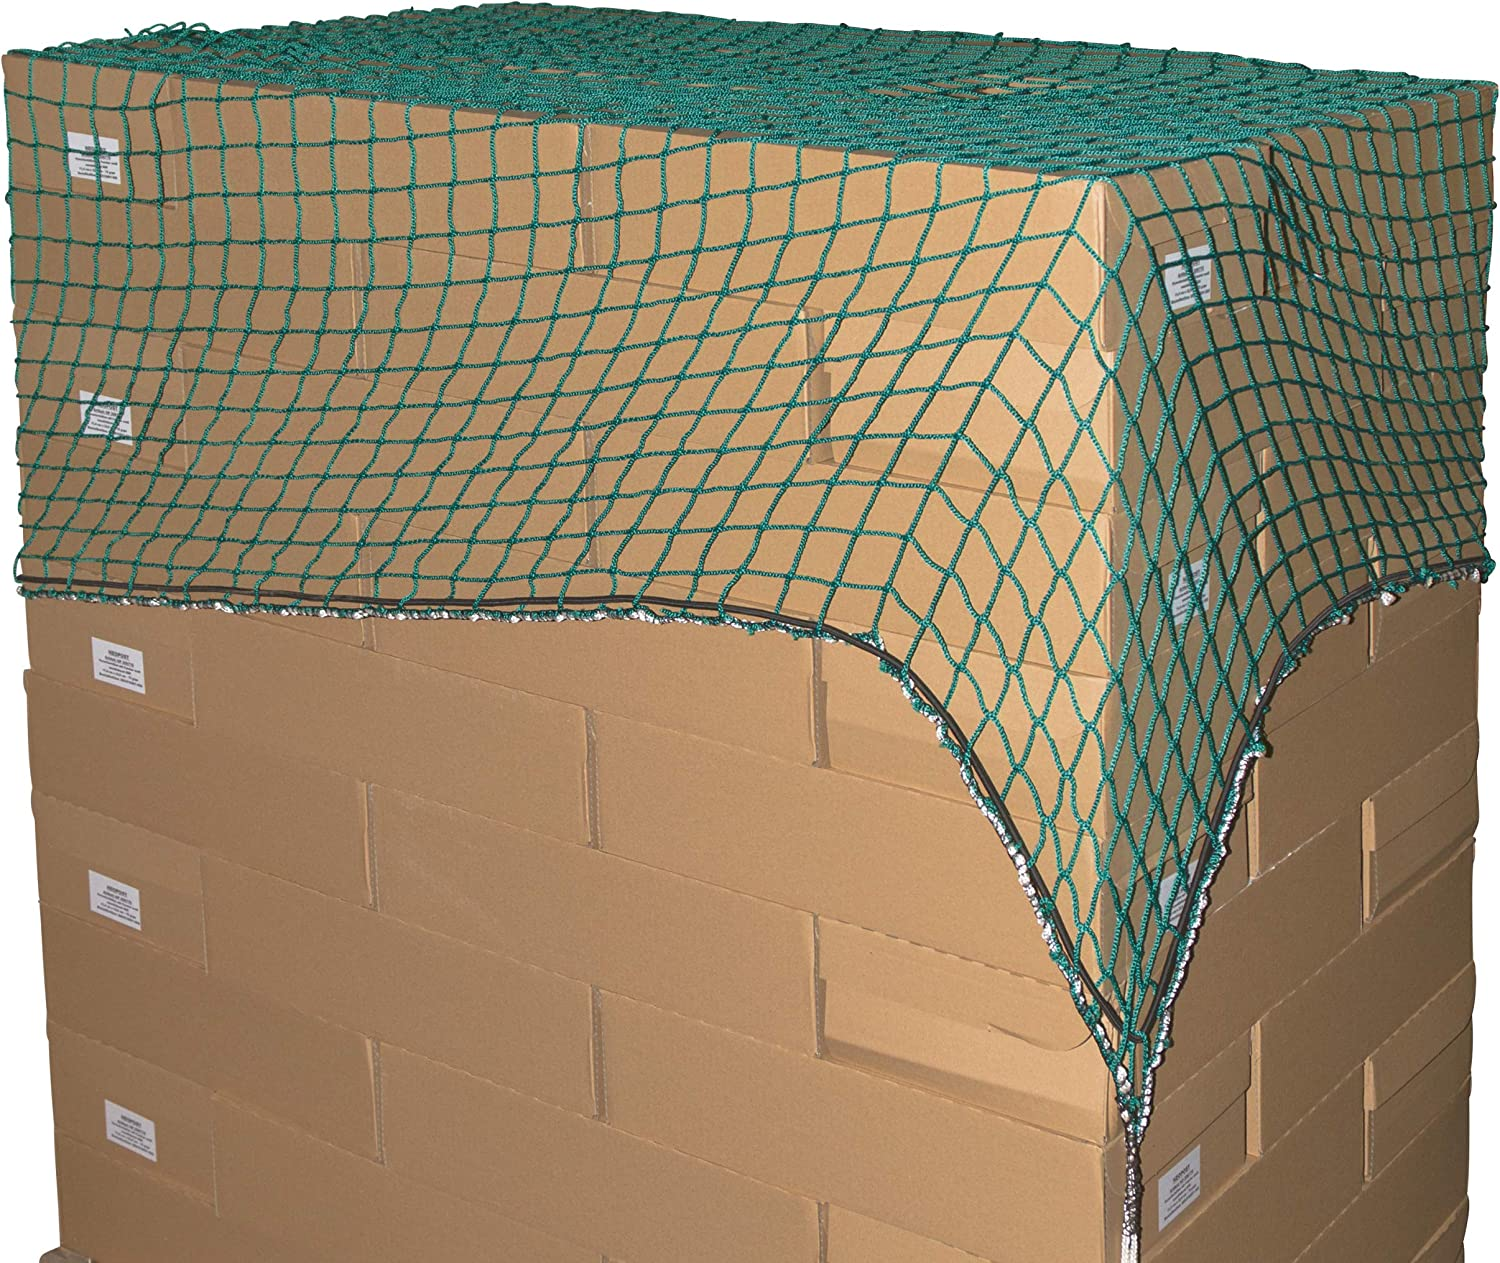 Kerbl 37250/ Covering Net Material Thickness